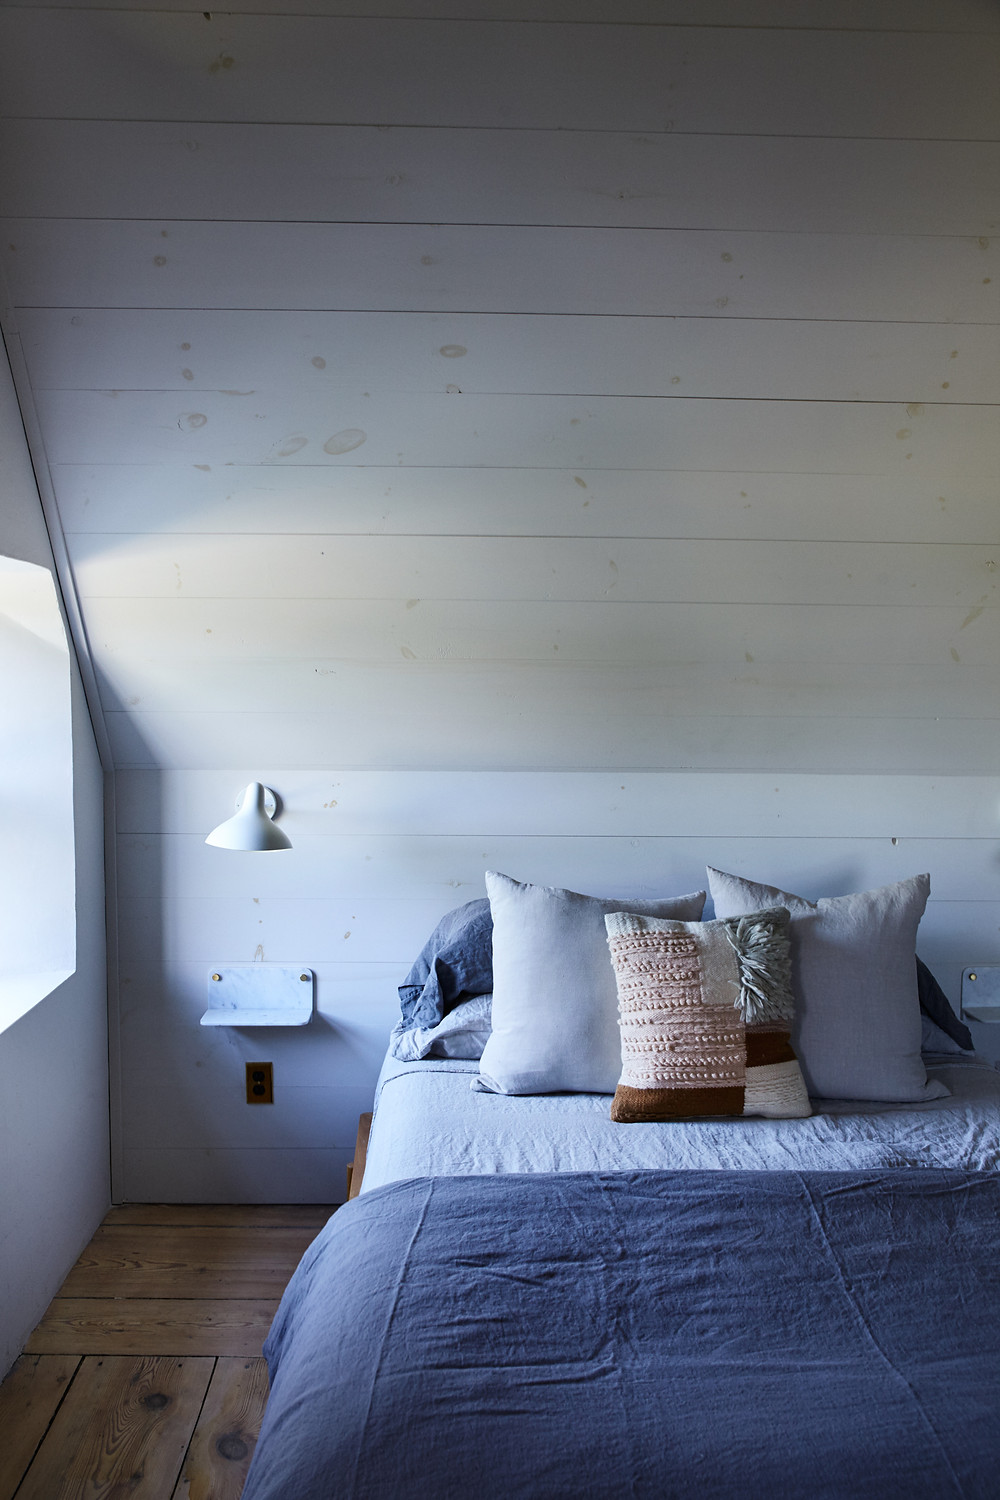 farmhouse designer bedroom decor with white wall lamp next to the bed